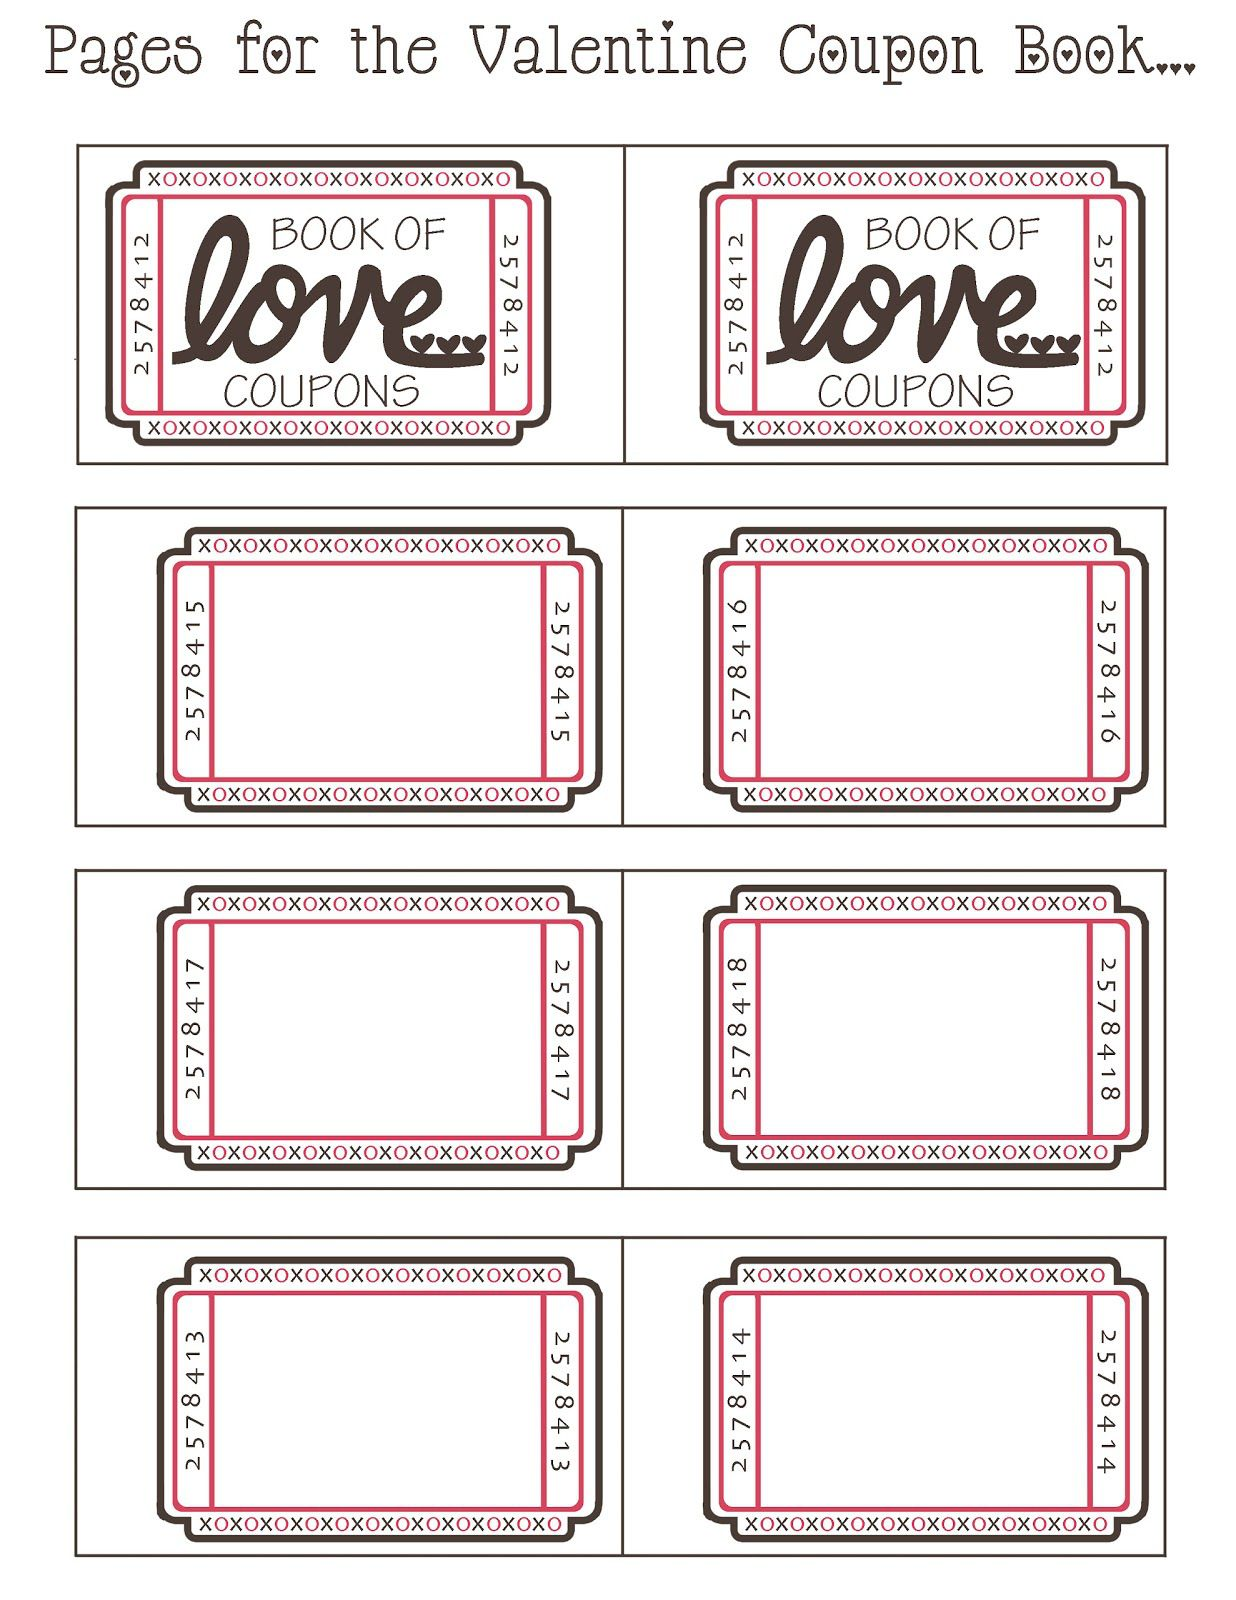 coupon book for husband template coupon book ideas for husband blank love coupon templates